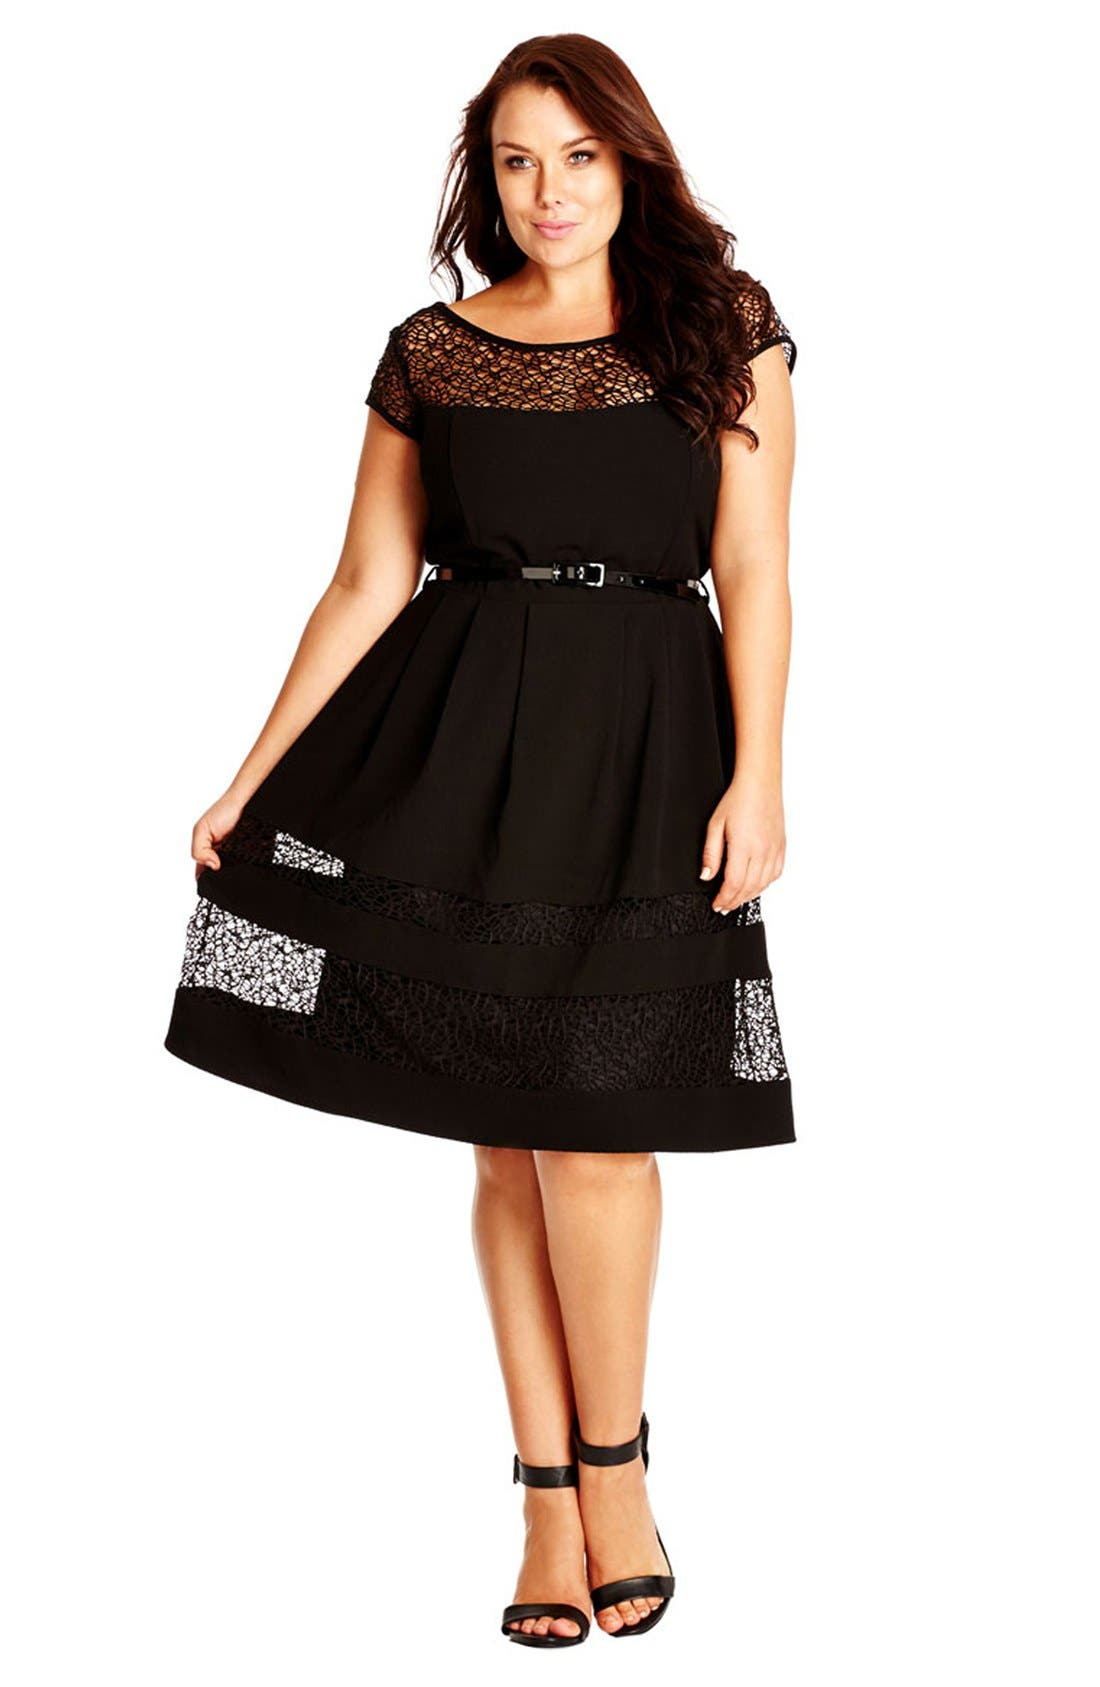 CITY CHIC Fit & Flare Dress with Delicate